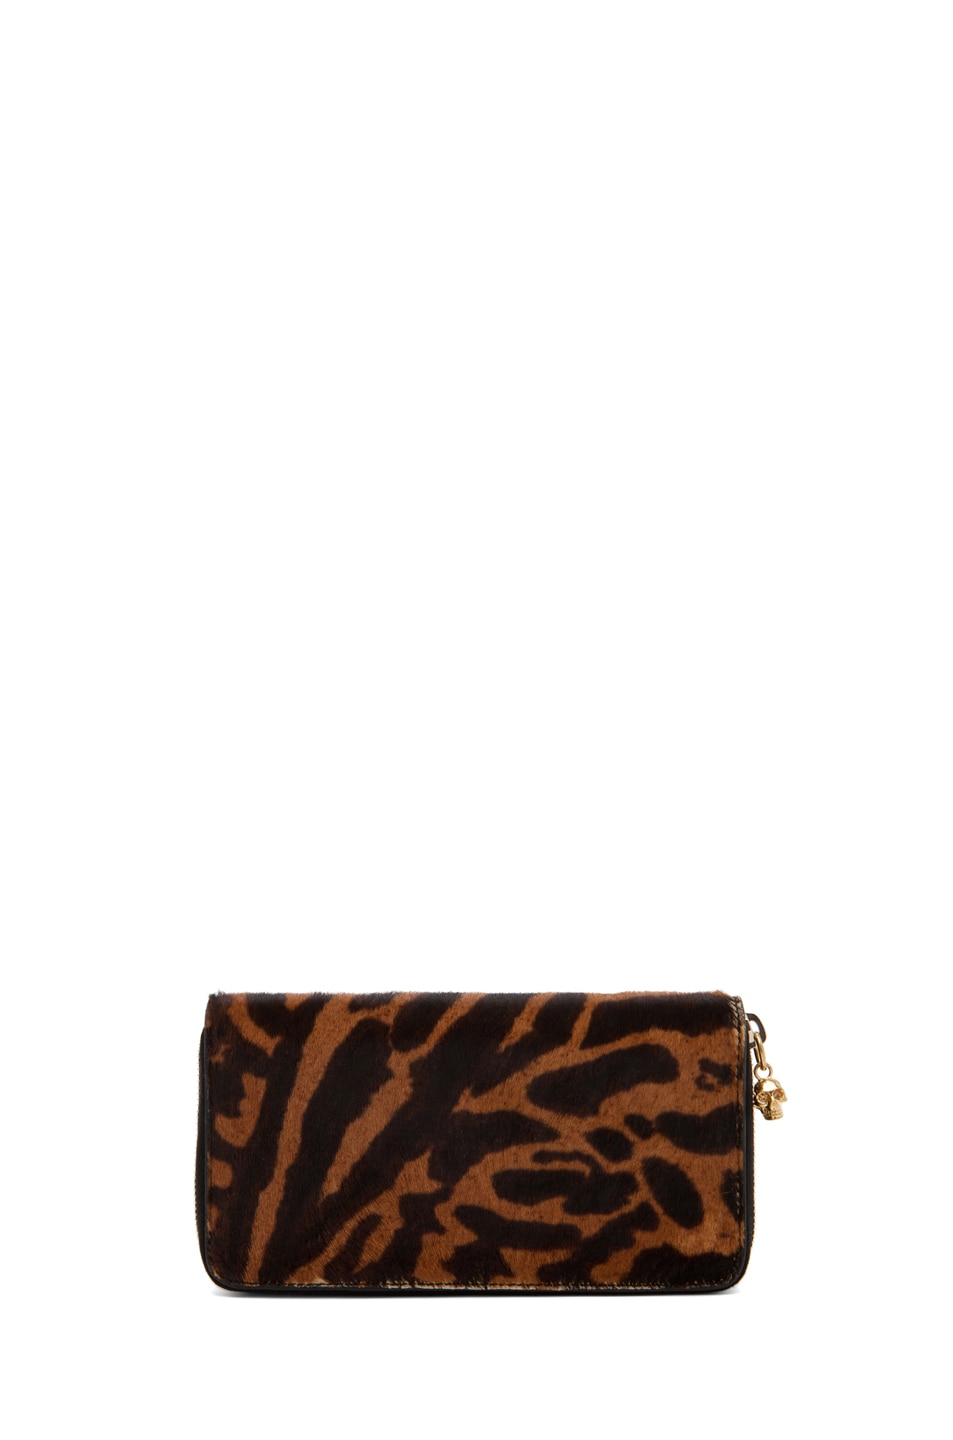 Image 1 of Alexander McQueen Zip Wallet in Natural/Black